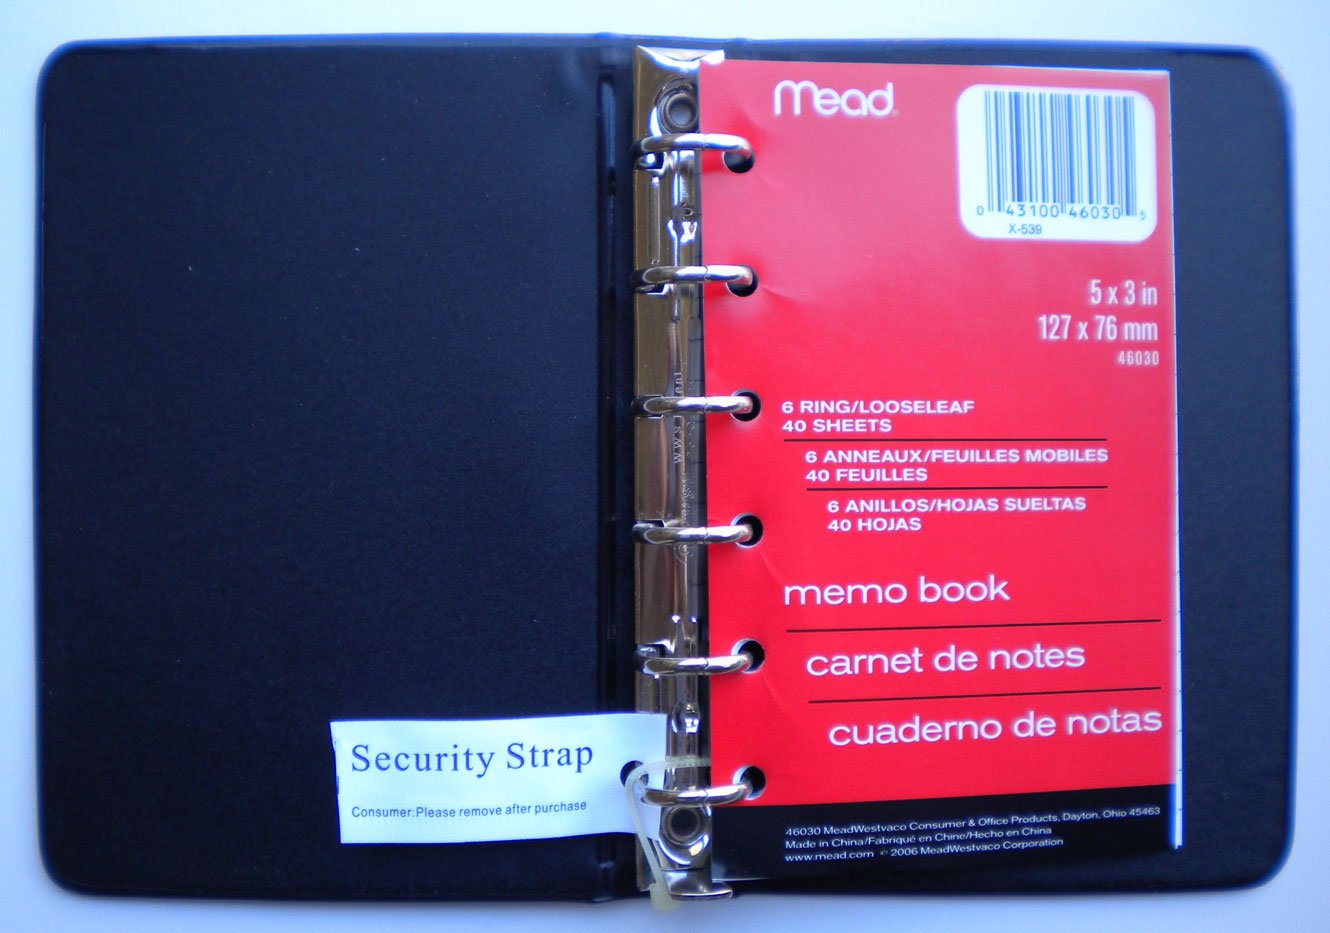 Mead (46000) Four Different Colored Mini 6-Ring Memo Books, Each Containing 3 x 5 inch Lined Paper by Mead (Image #1)